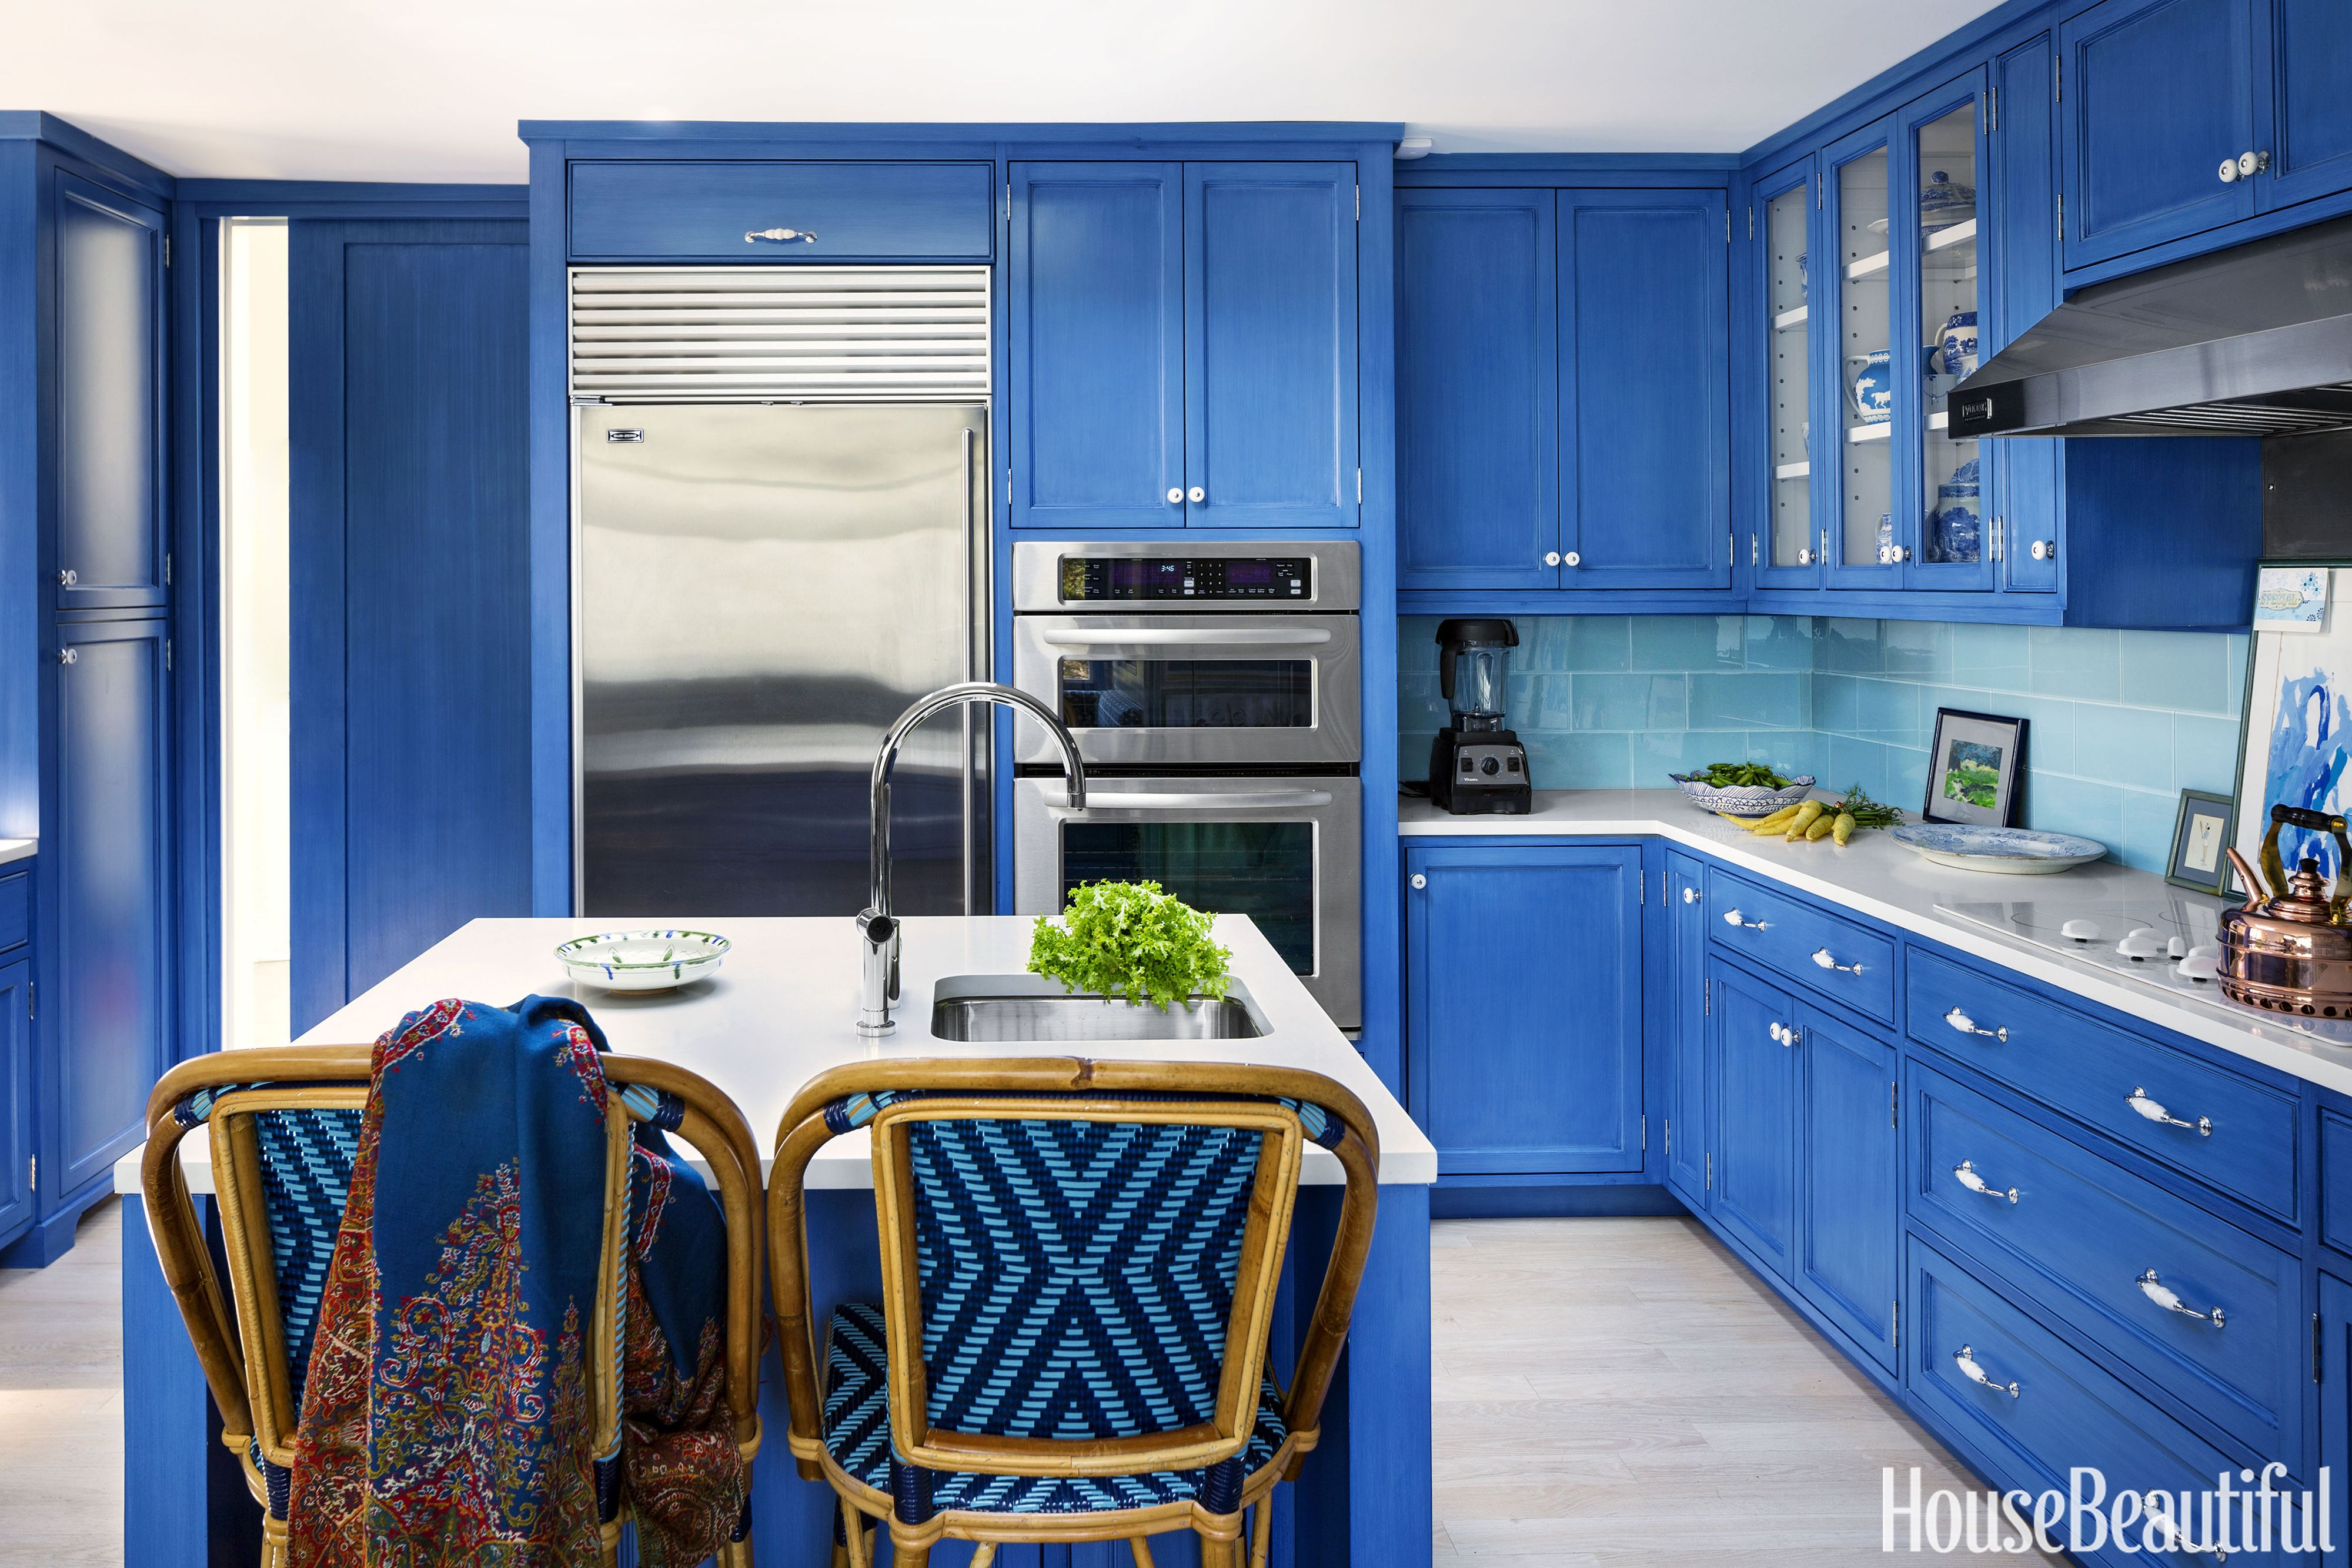 House Beautiful & 15 Blue Kitchen Design Ideas - Blue Kitchen Walls